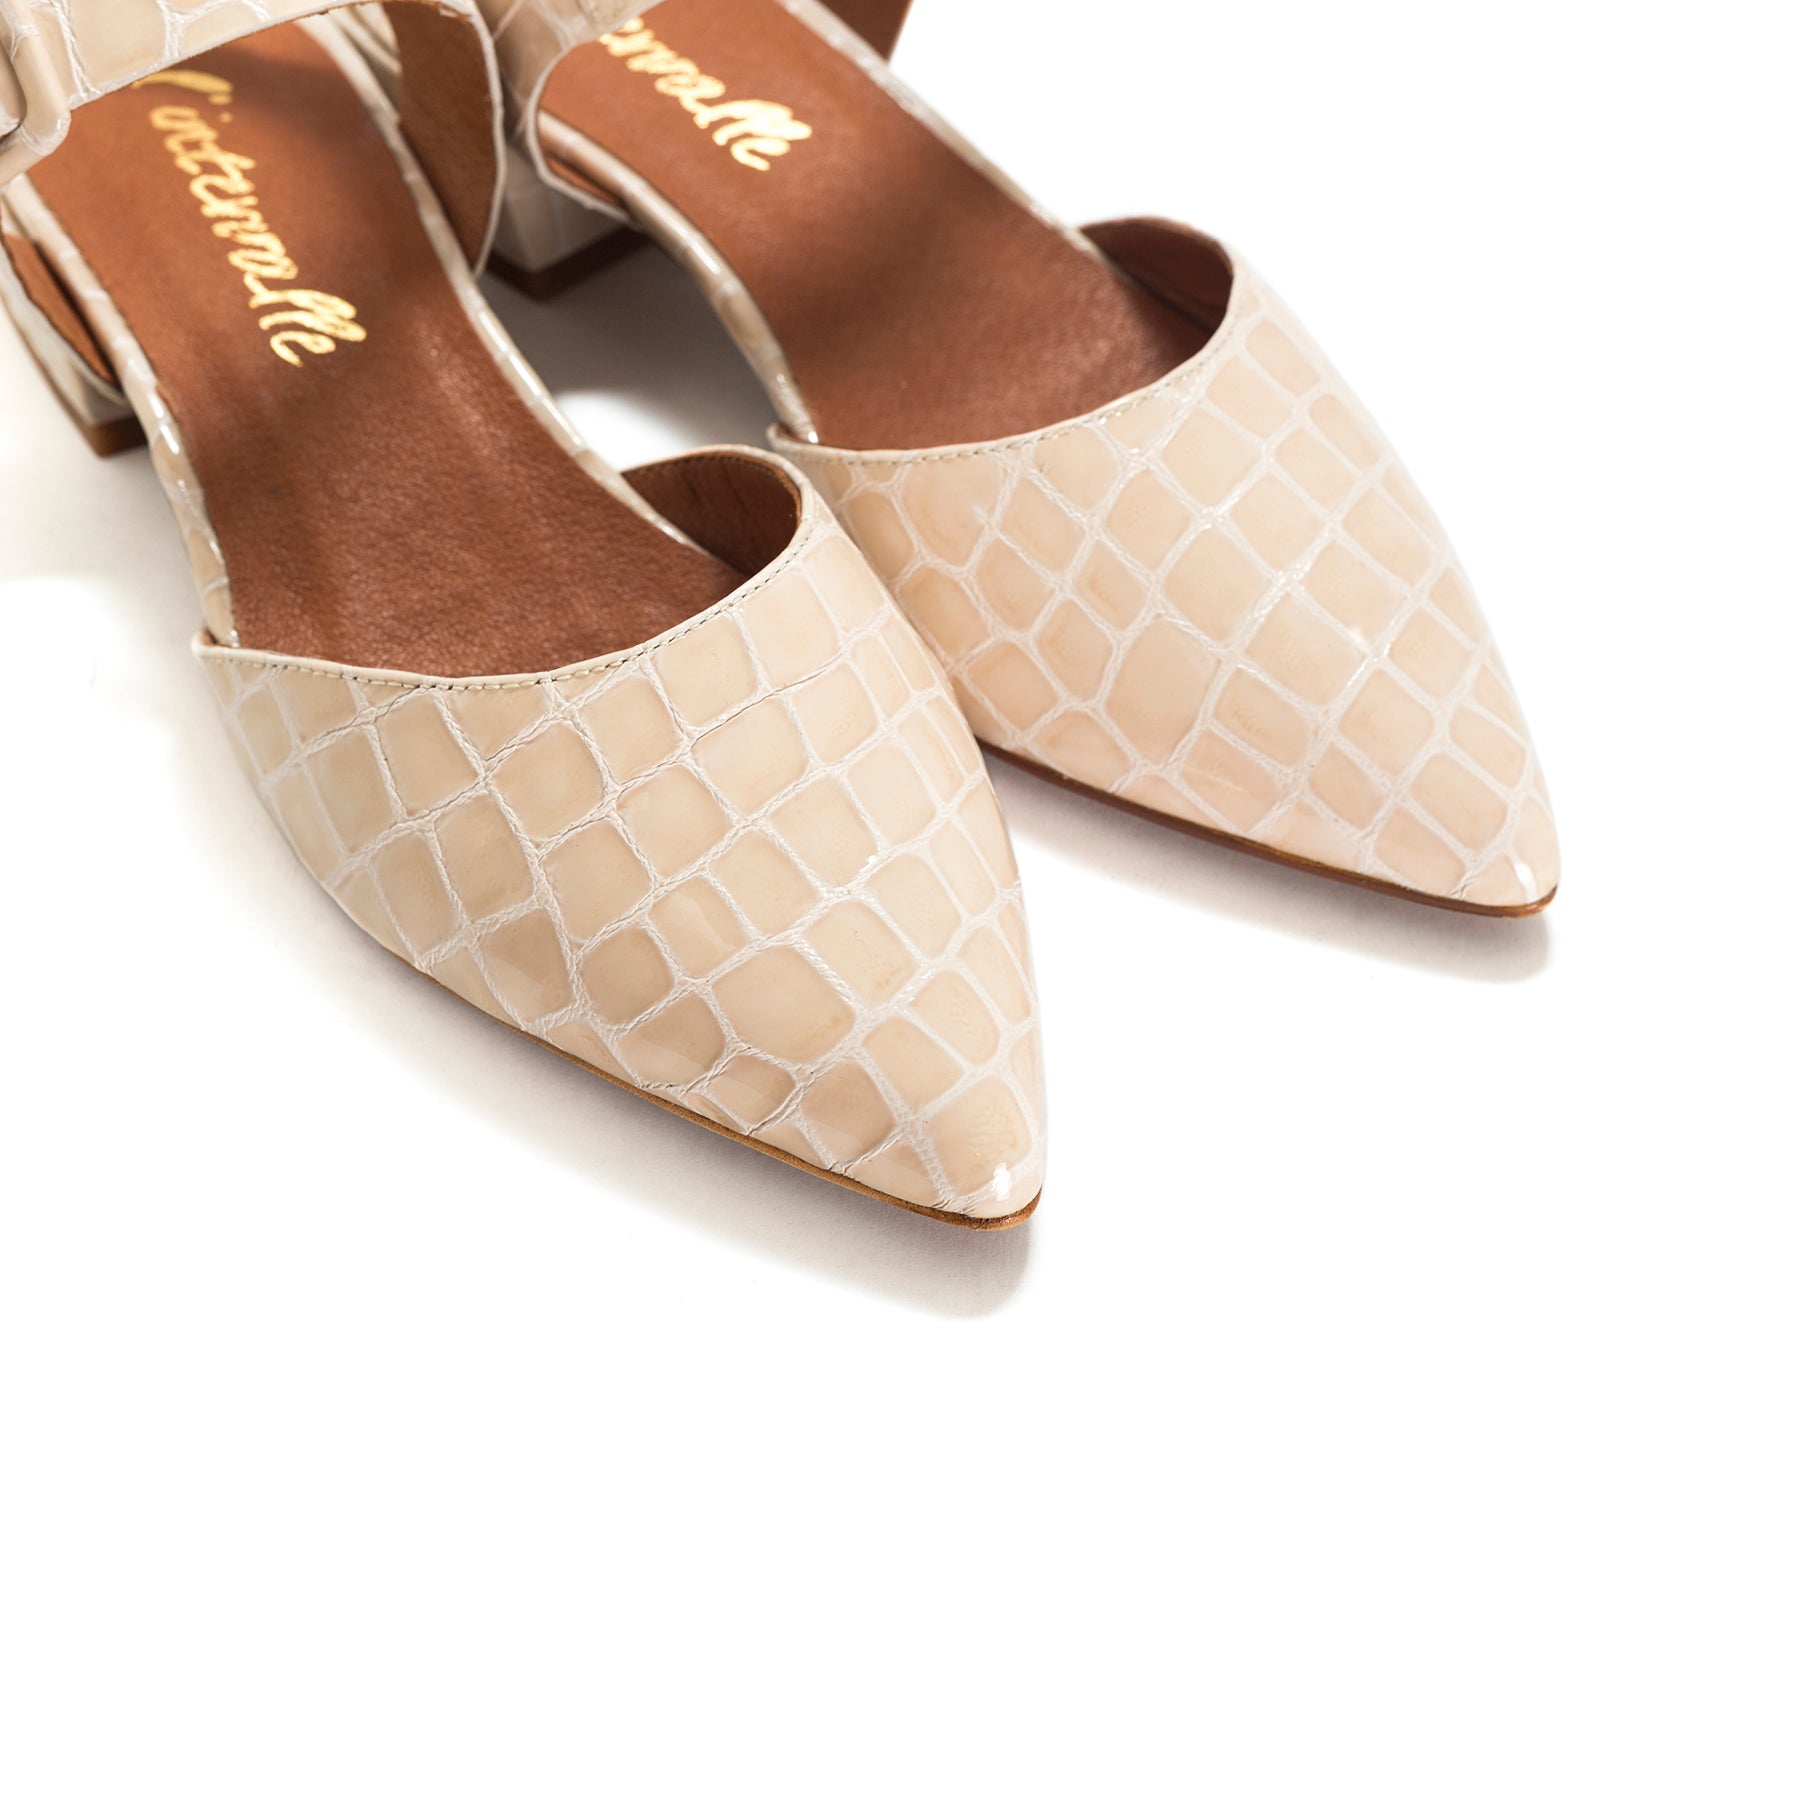 Evi Nude Croco Leather Shoes